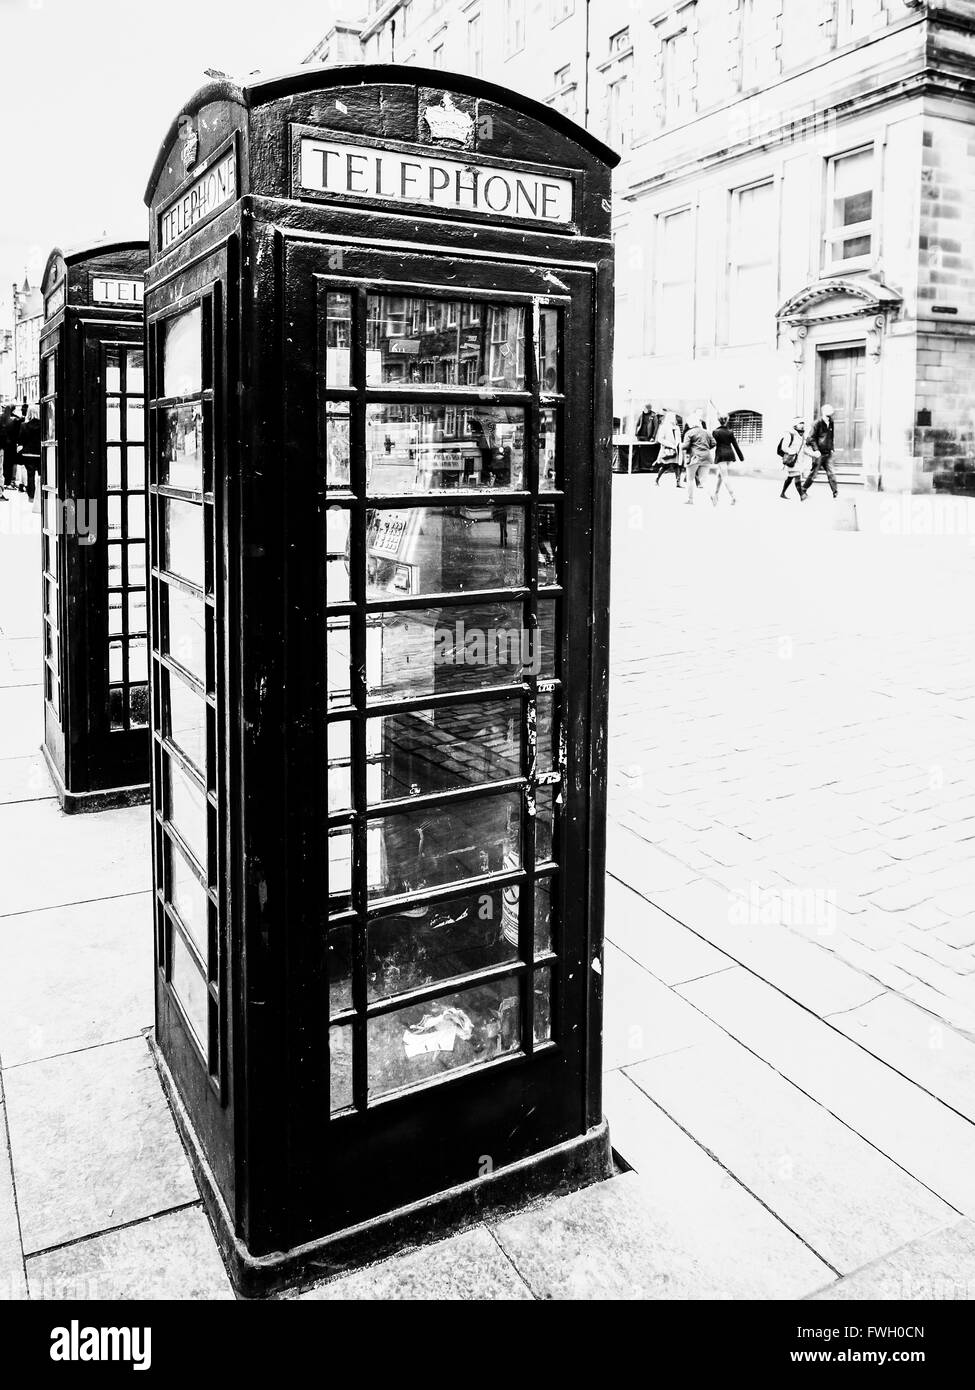 Telephone Booths - Stock Image